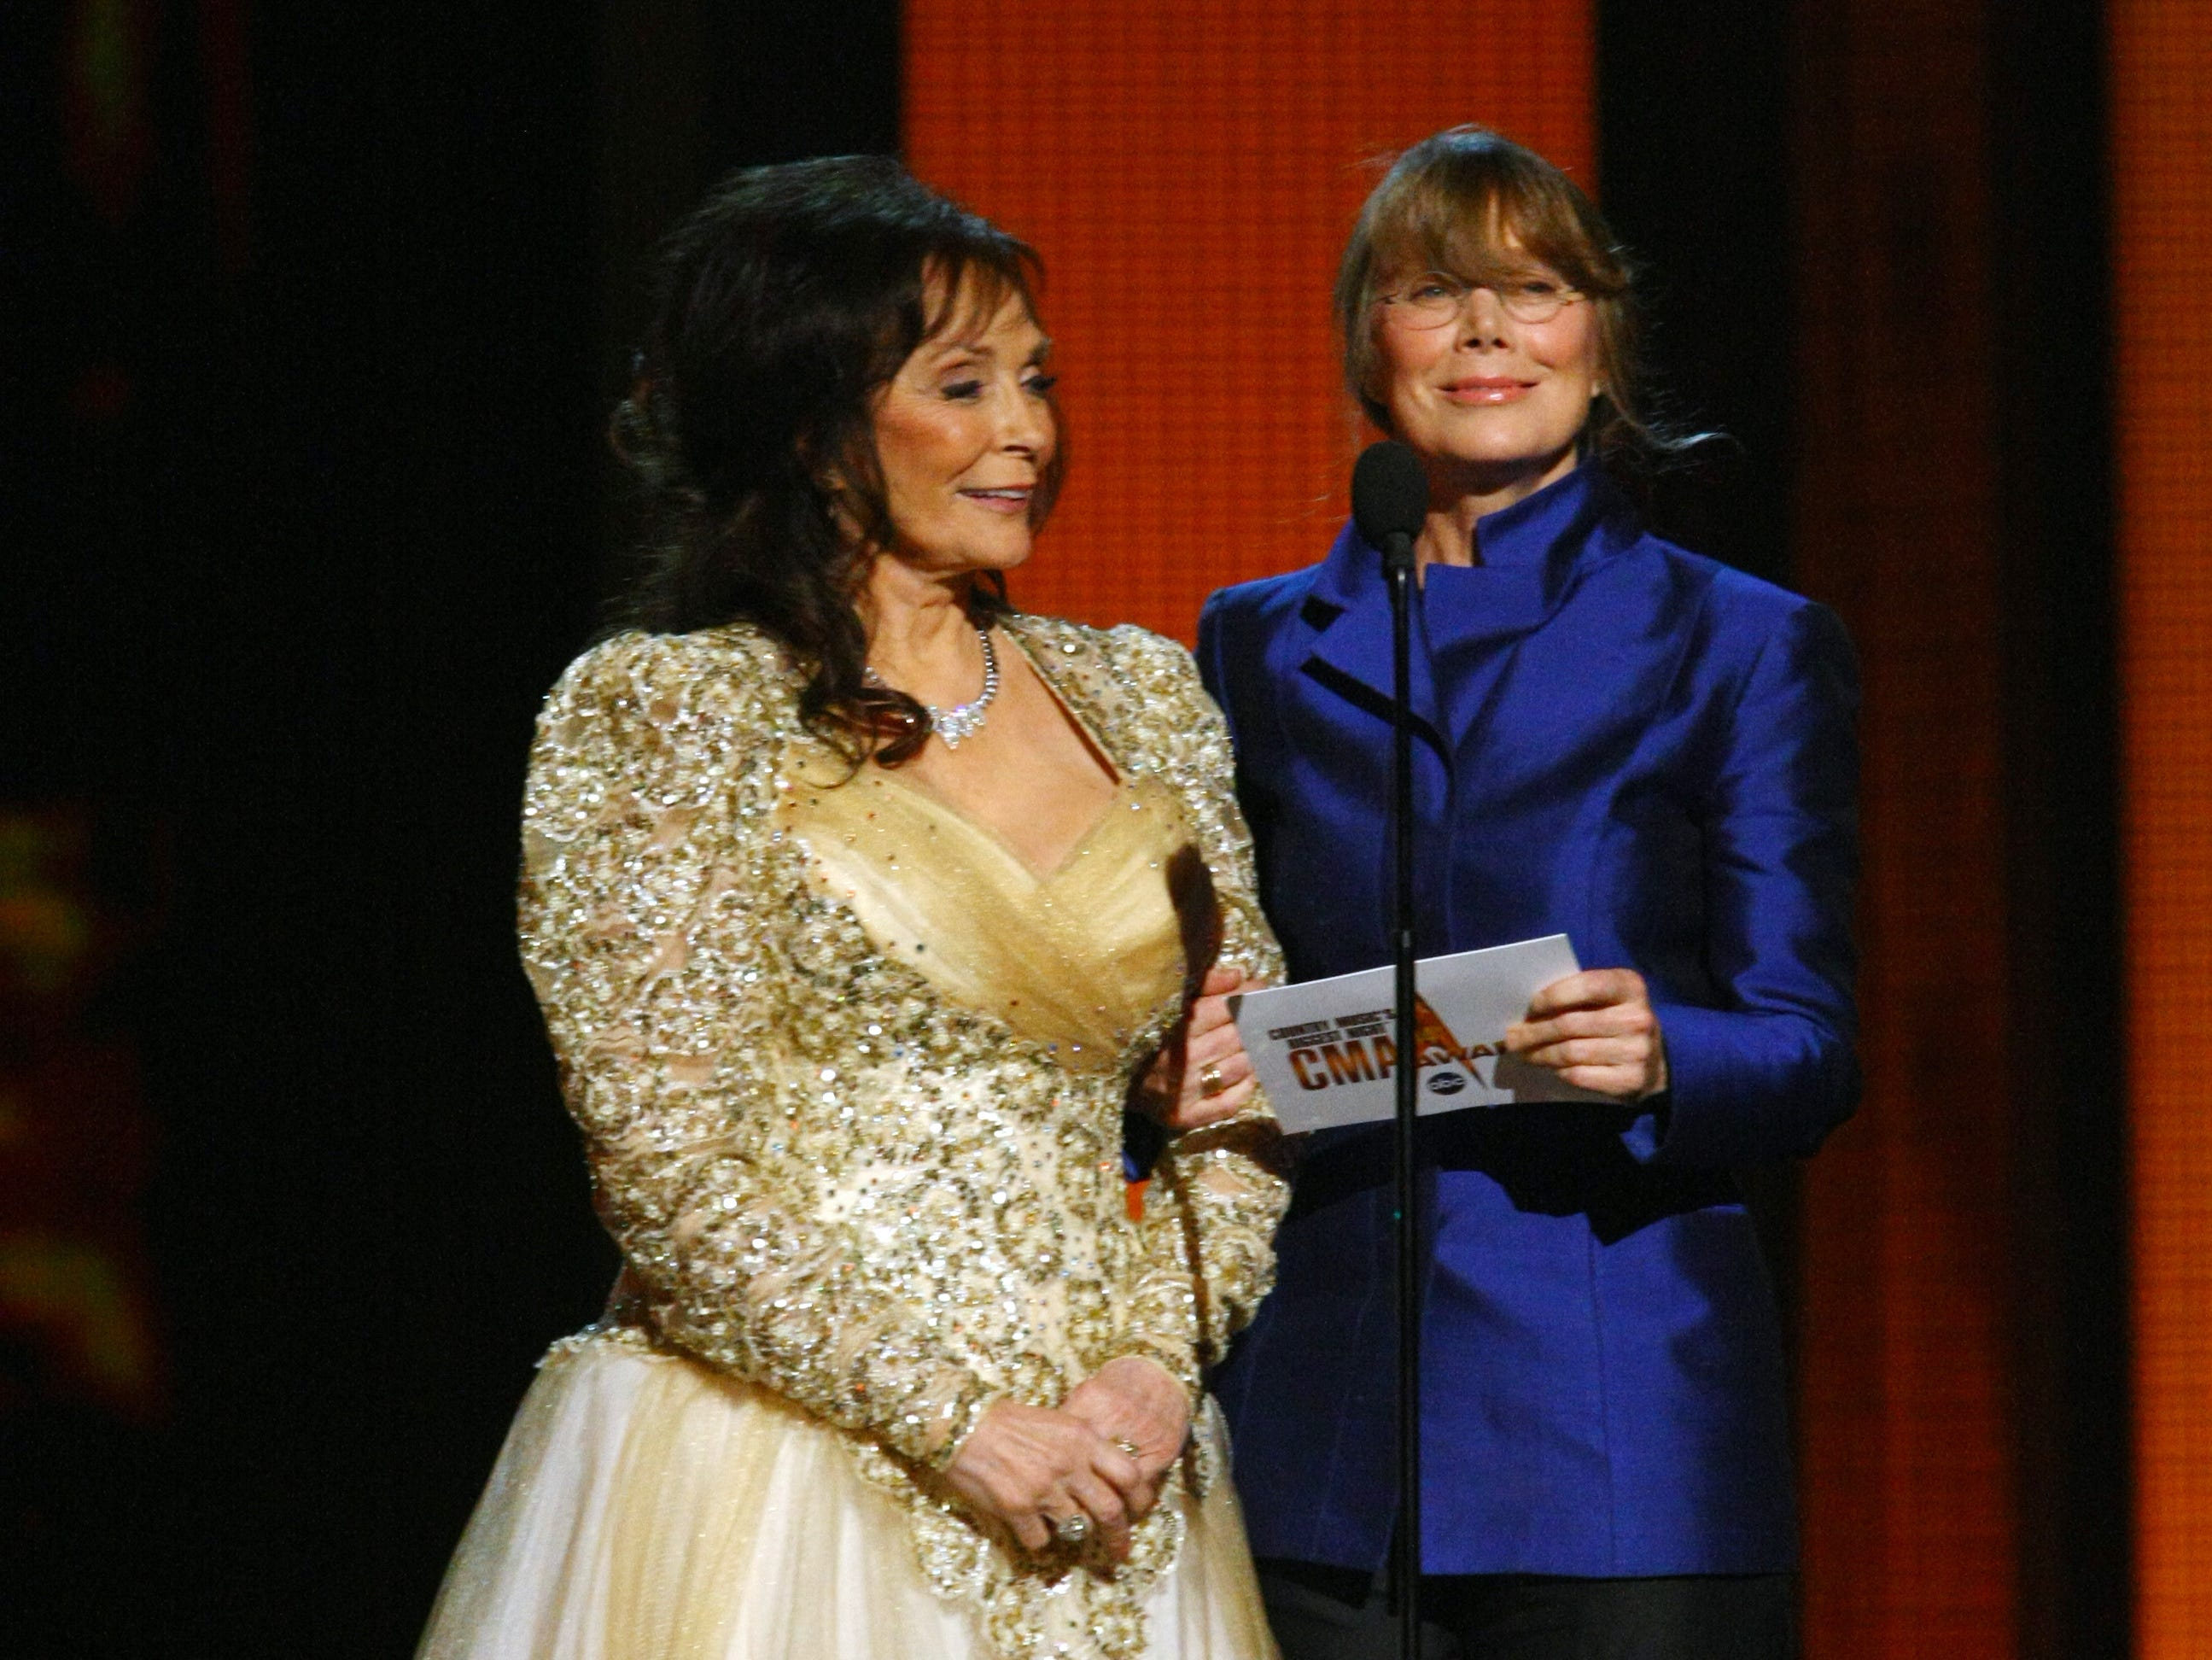 Loretta Lynn, left, and Sissy Spacek announce the winner for Female Vocalist of the Year at the 44th annual CMA Awards show Nov. 10, 2010, at the Bridgestone Arena.